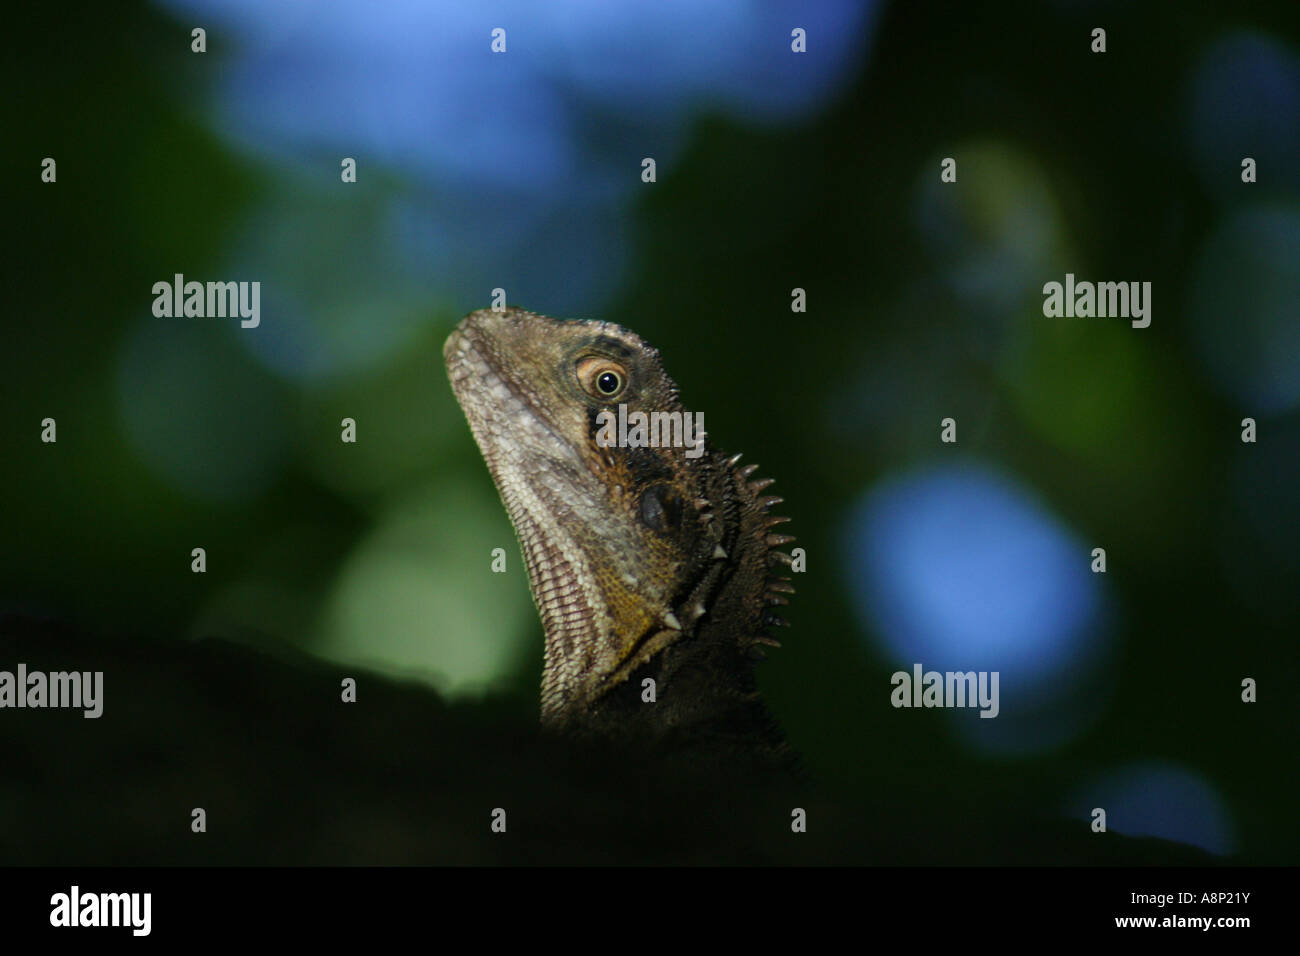 The Australian Water Dragon - Stock Image